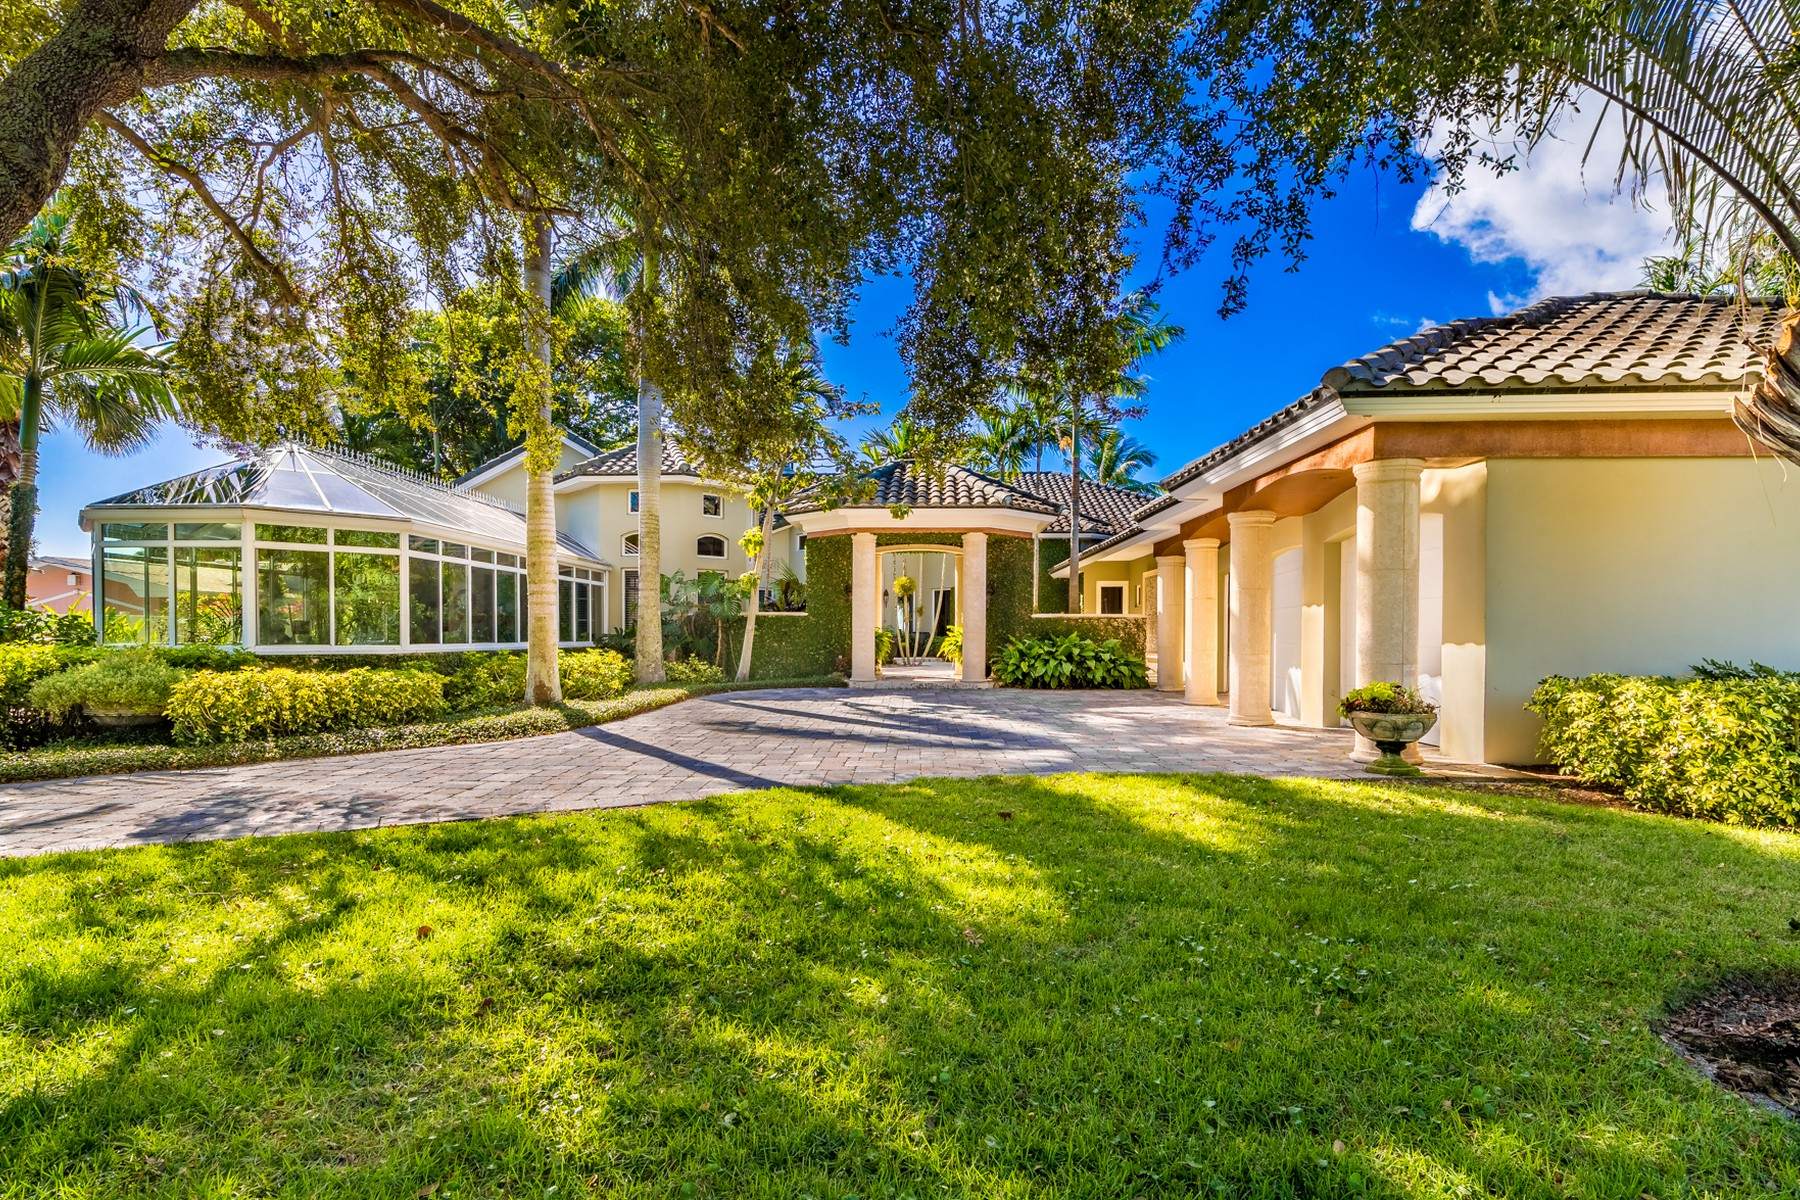 Property vì Bán tại Spectacular Riverfront Home in Sunset Shores 200 Riverside Drive Melbourne Beach, Florida 32951 Hoa Kỳ